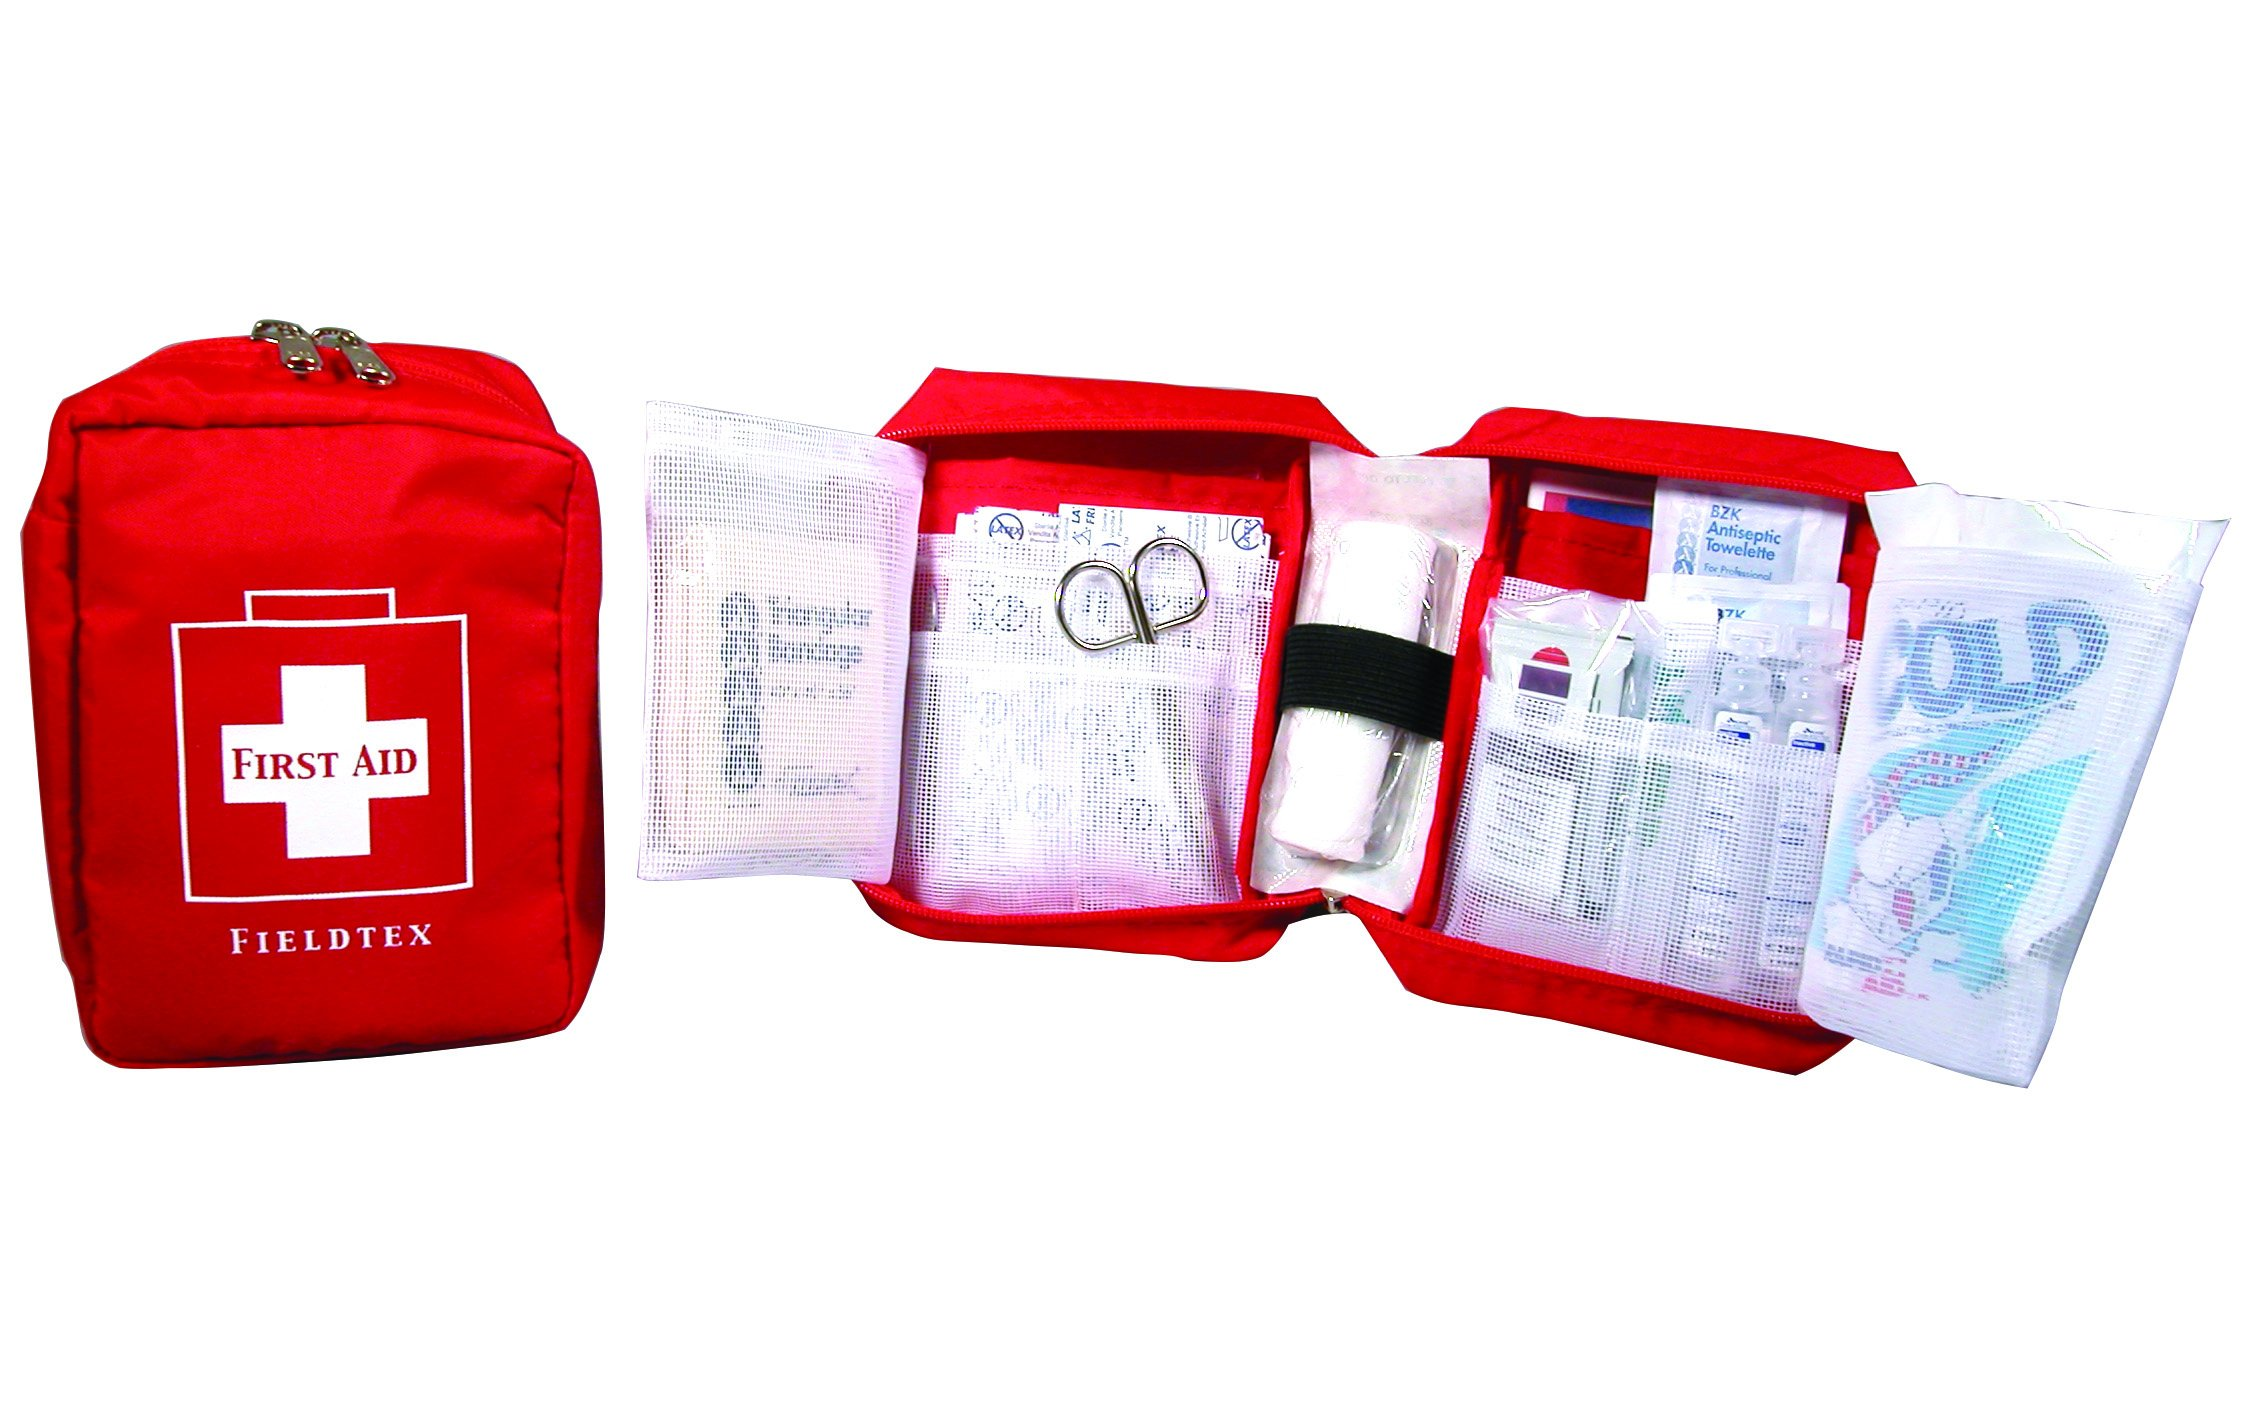 Fieldtex Foldout First Aid Kit 911-91901-11100